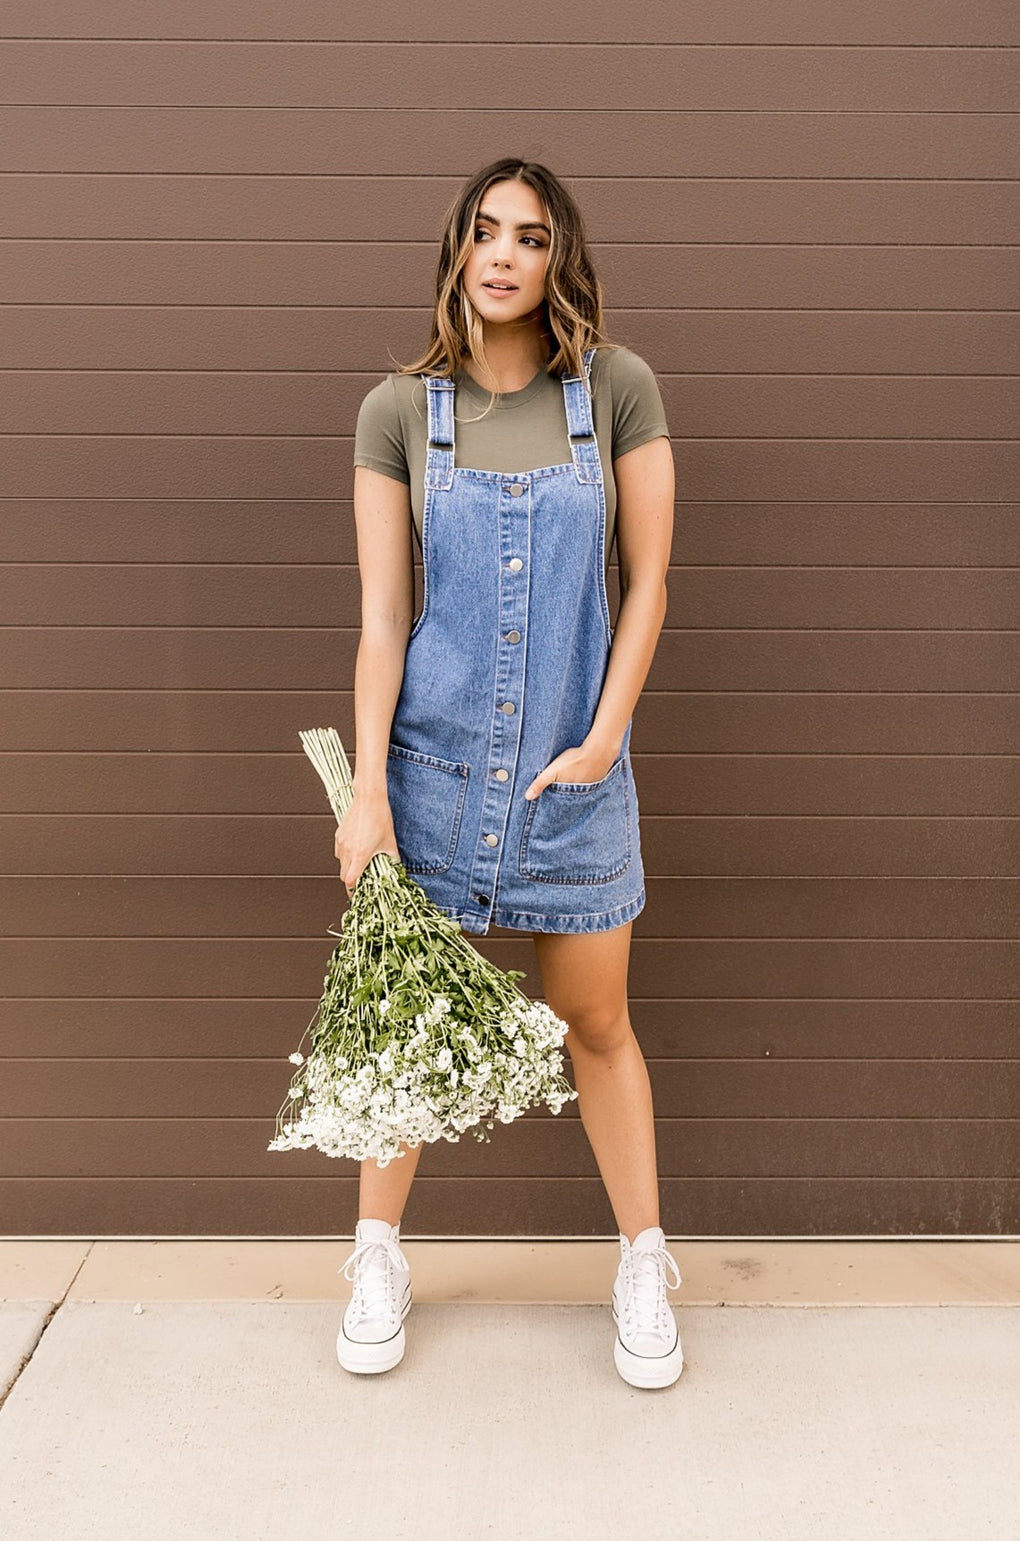 Let's Brunch Denim Overall Dress